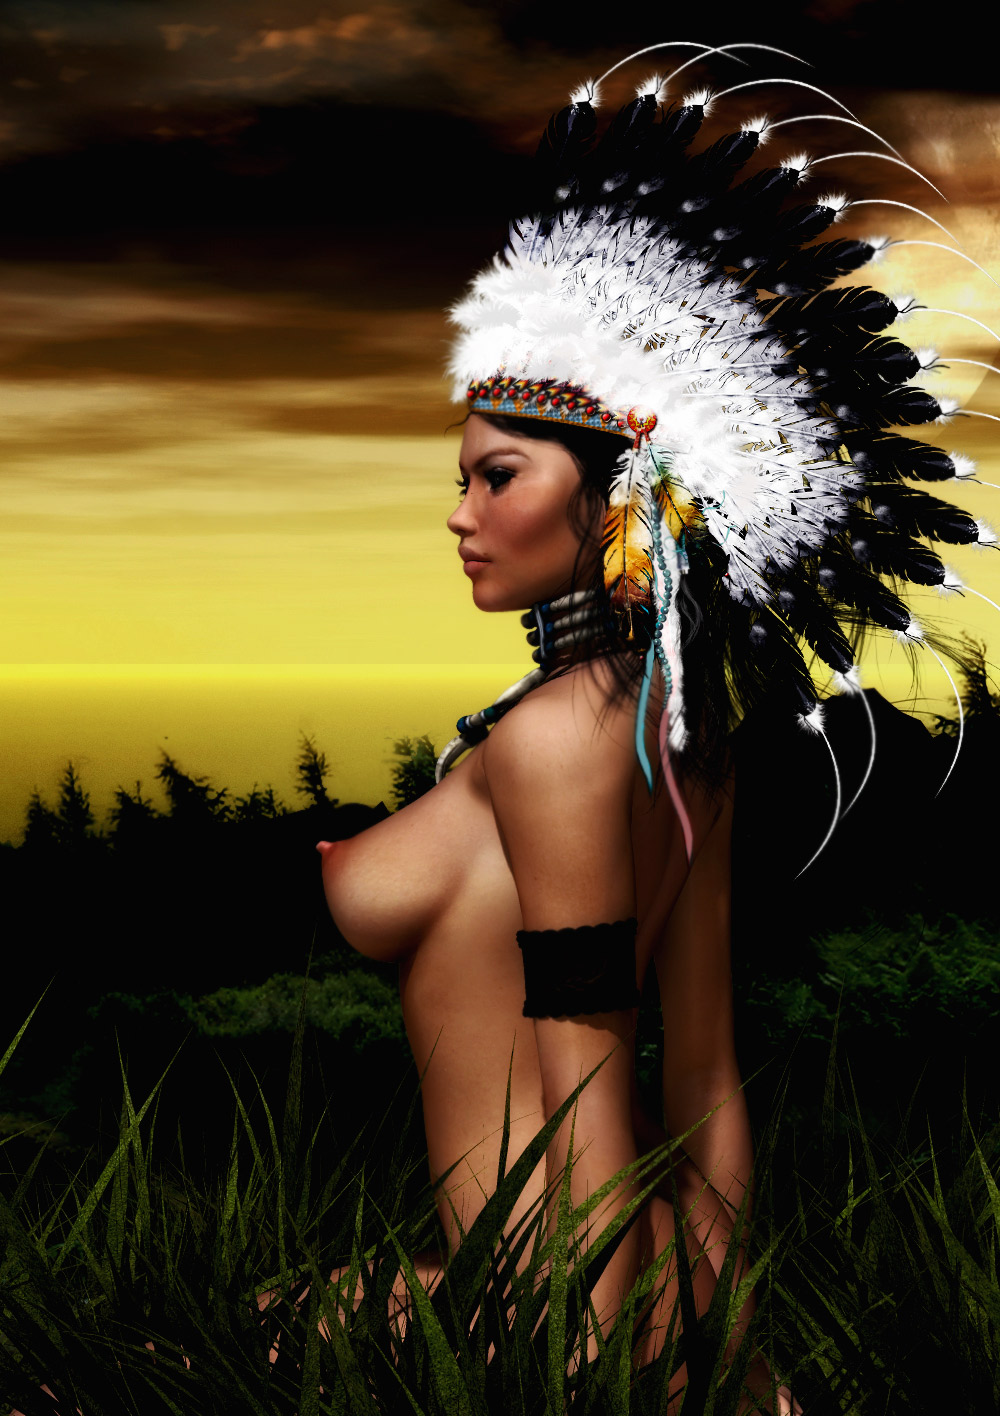 native-american-slut-nude